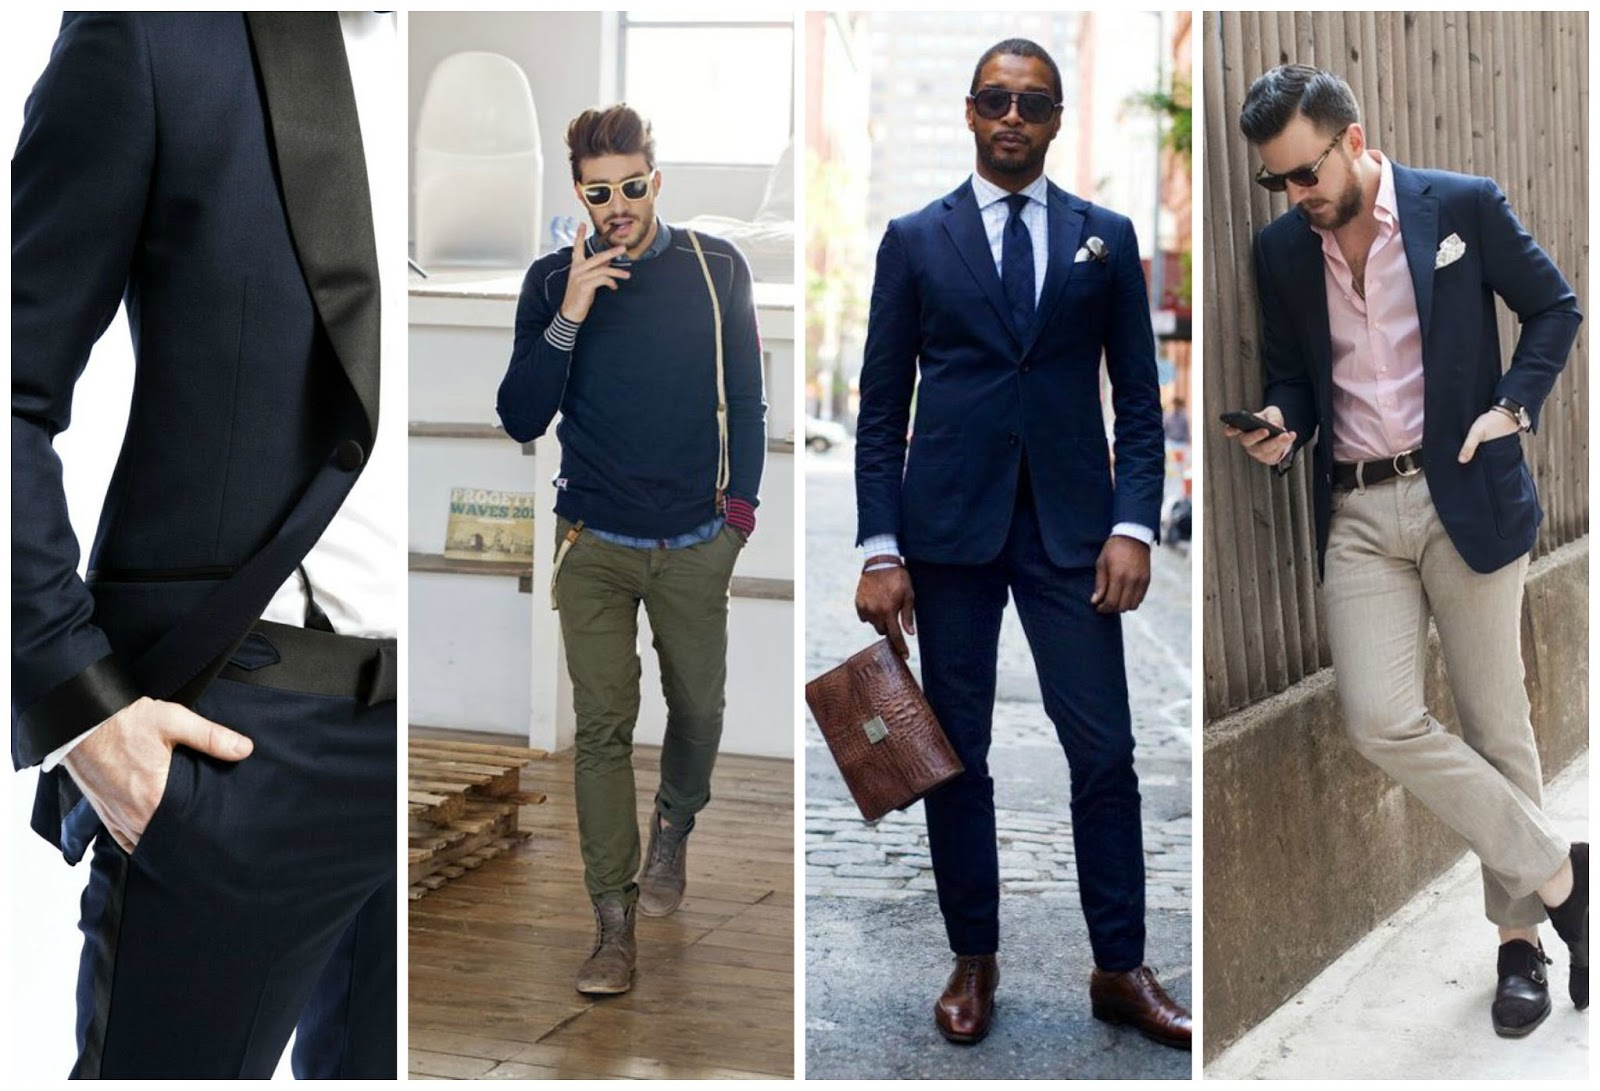 MENSWEAR | NAVY IS THE NEW BLACK . the urban man wears blue suit white shirts brown tie pocket square sexy classy look mens style in the streets